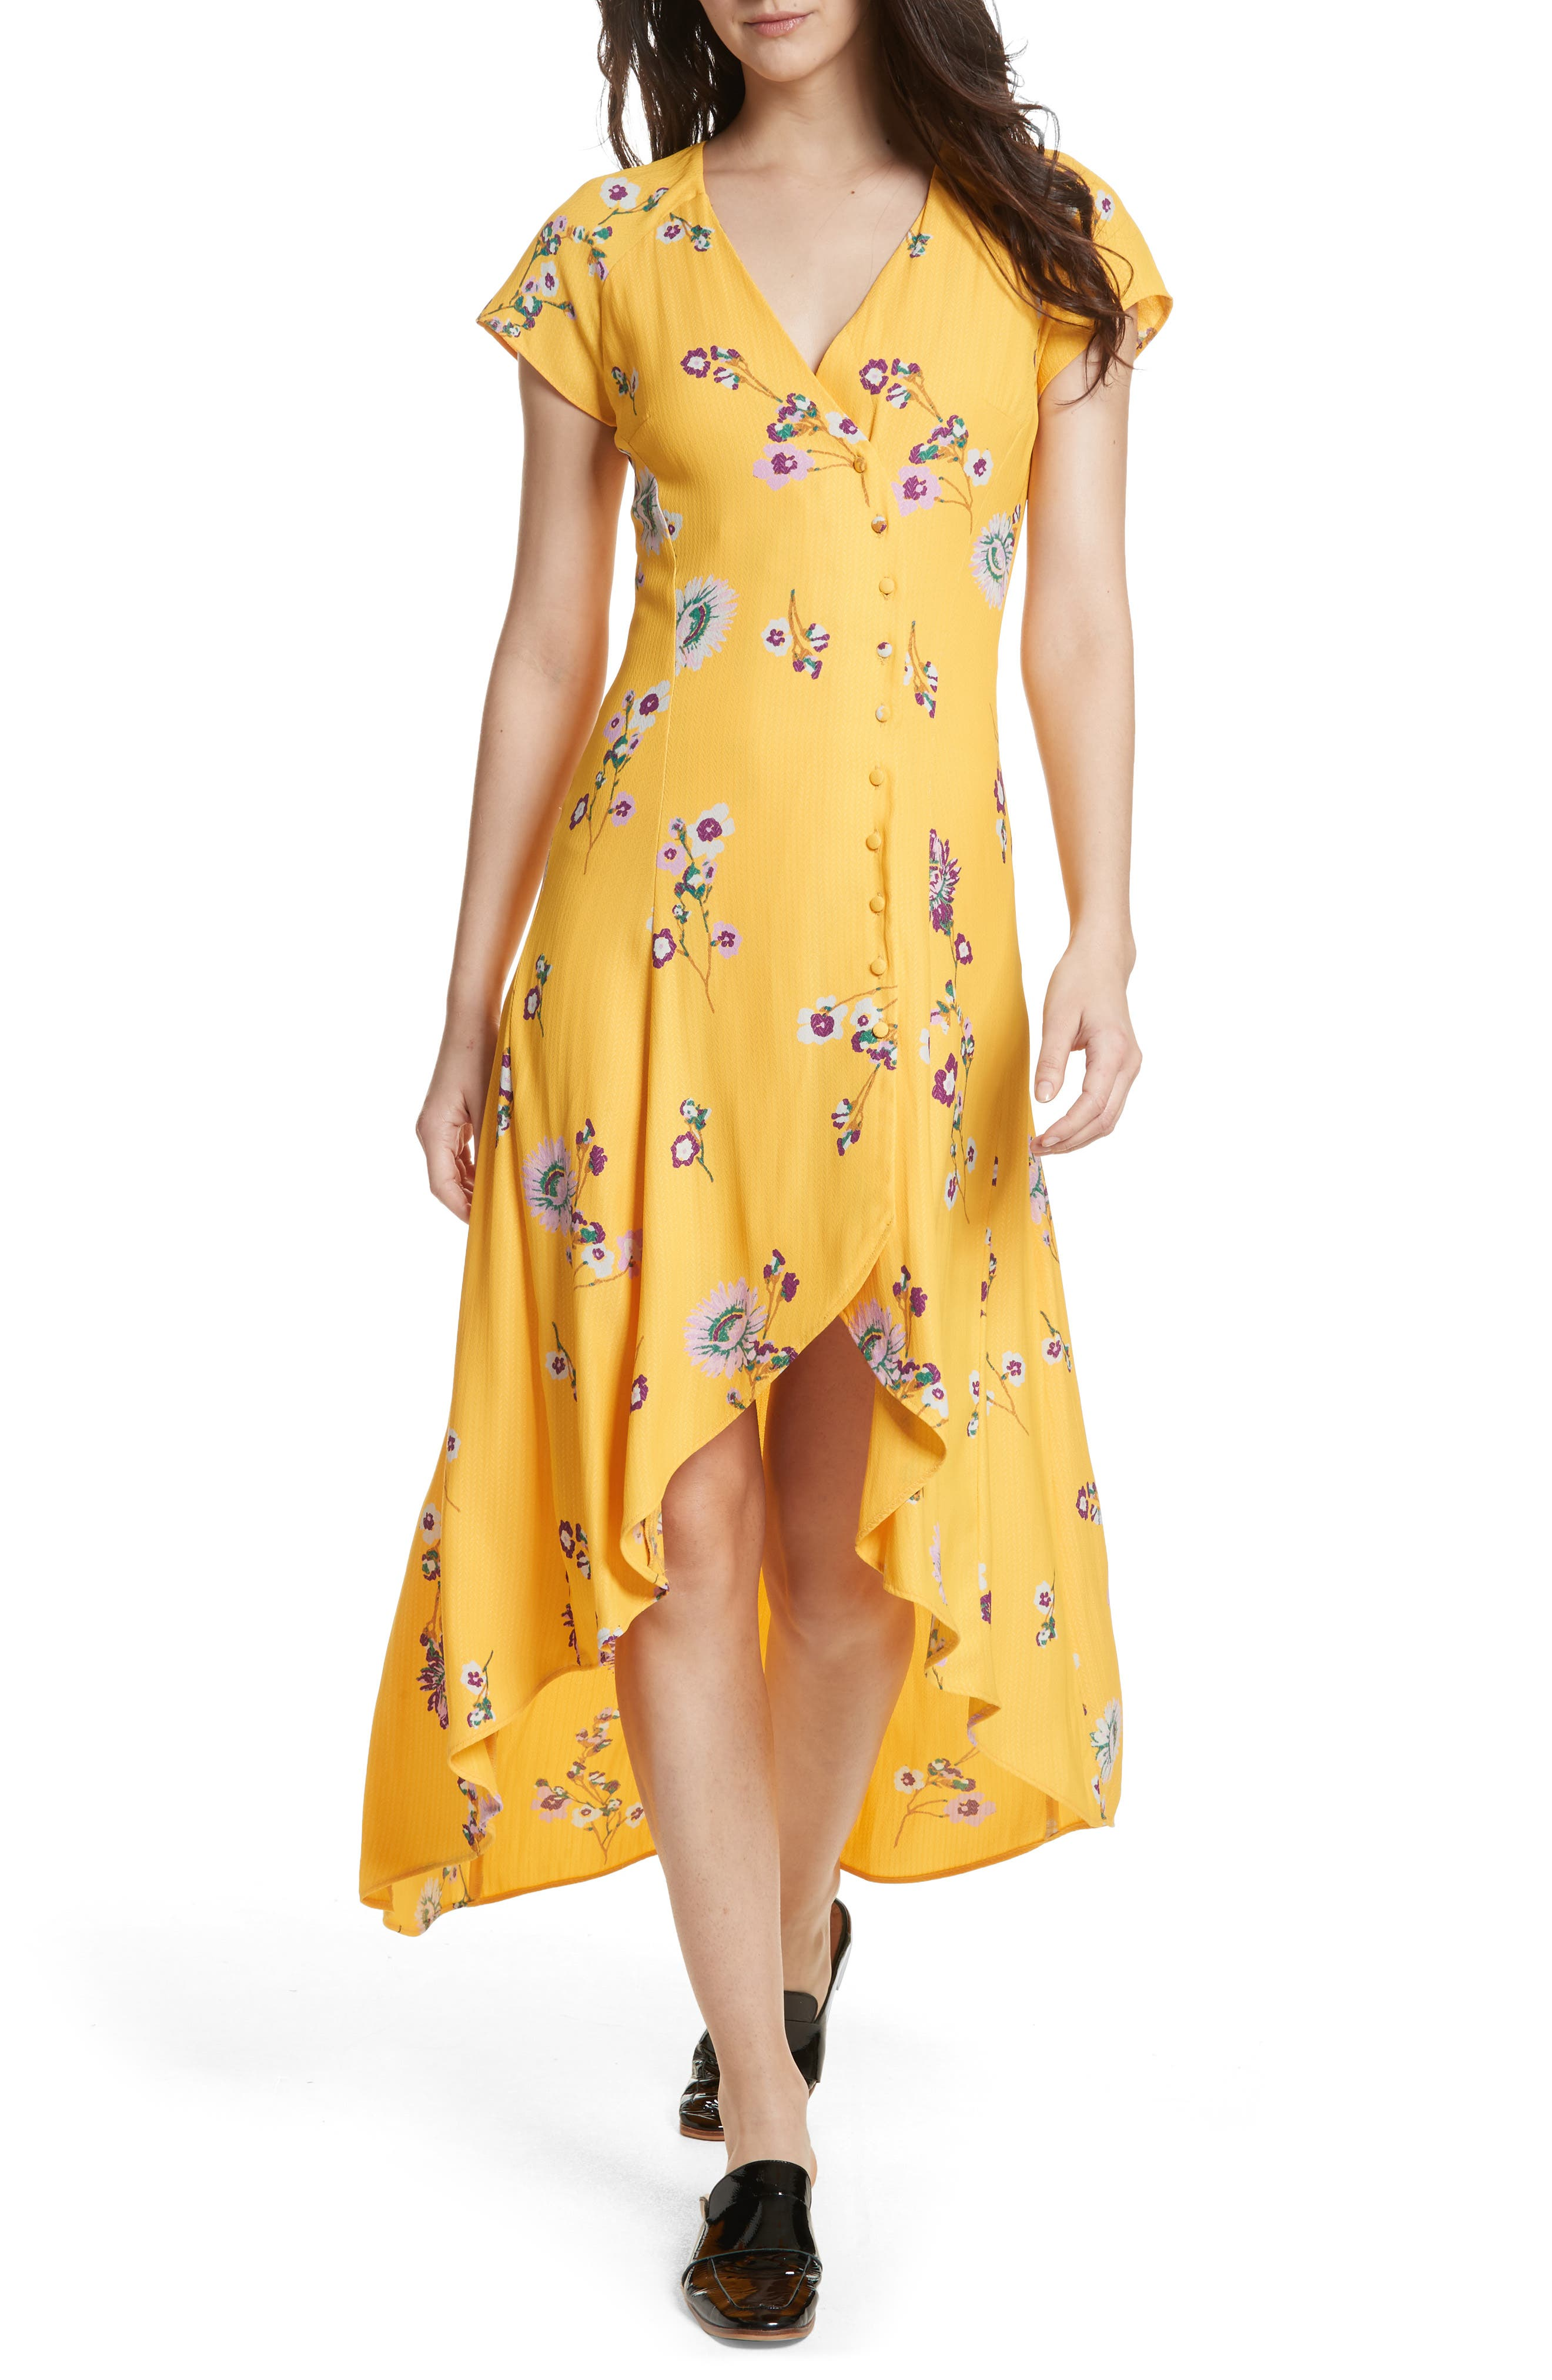 Lost in You Midi Dress,                             Main thumbnail 3, color,